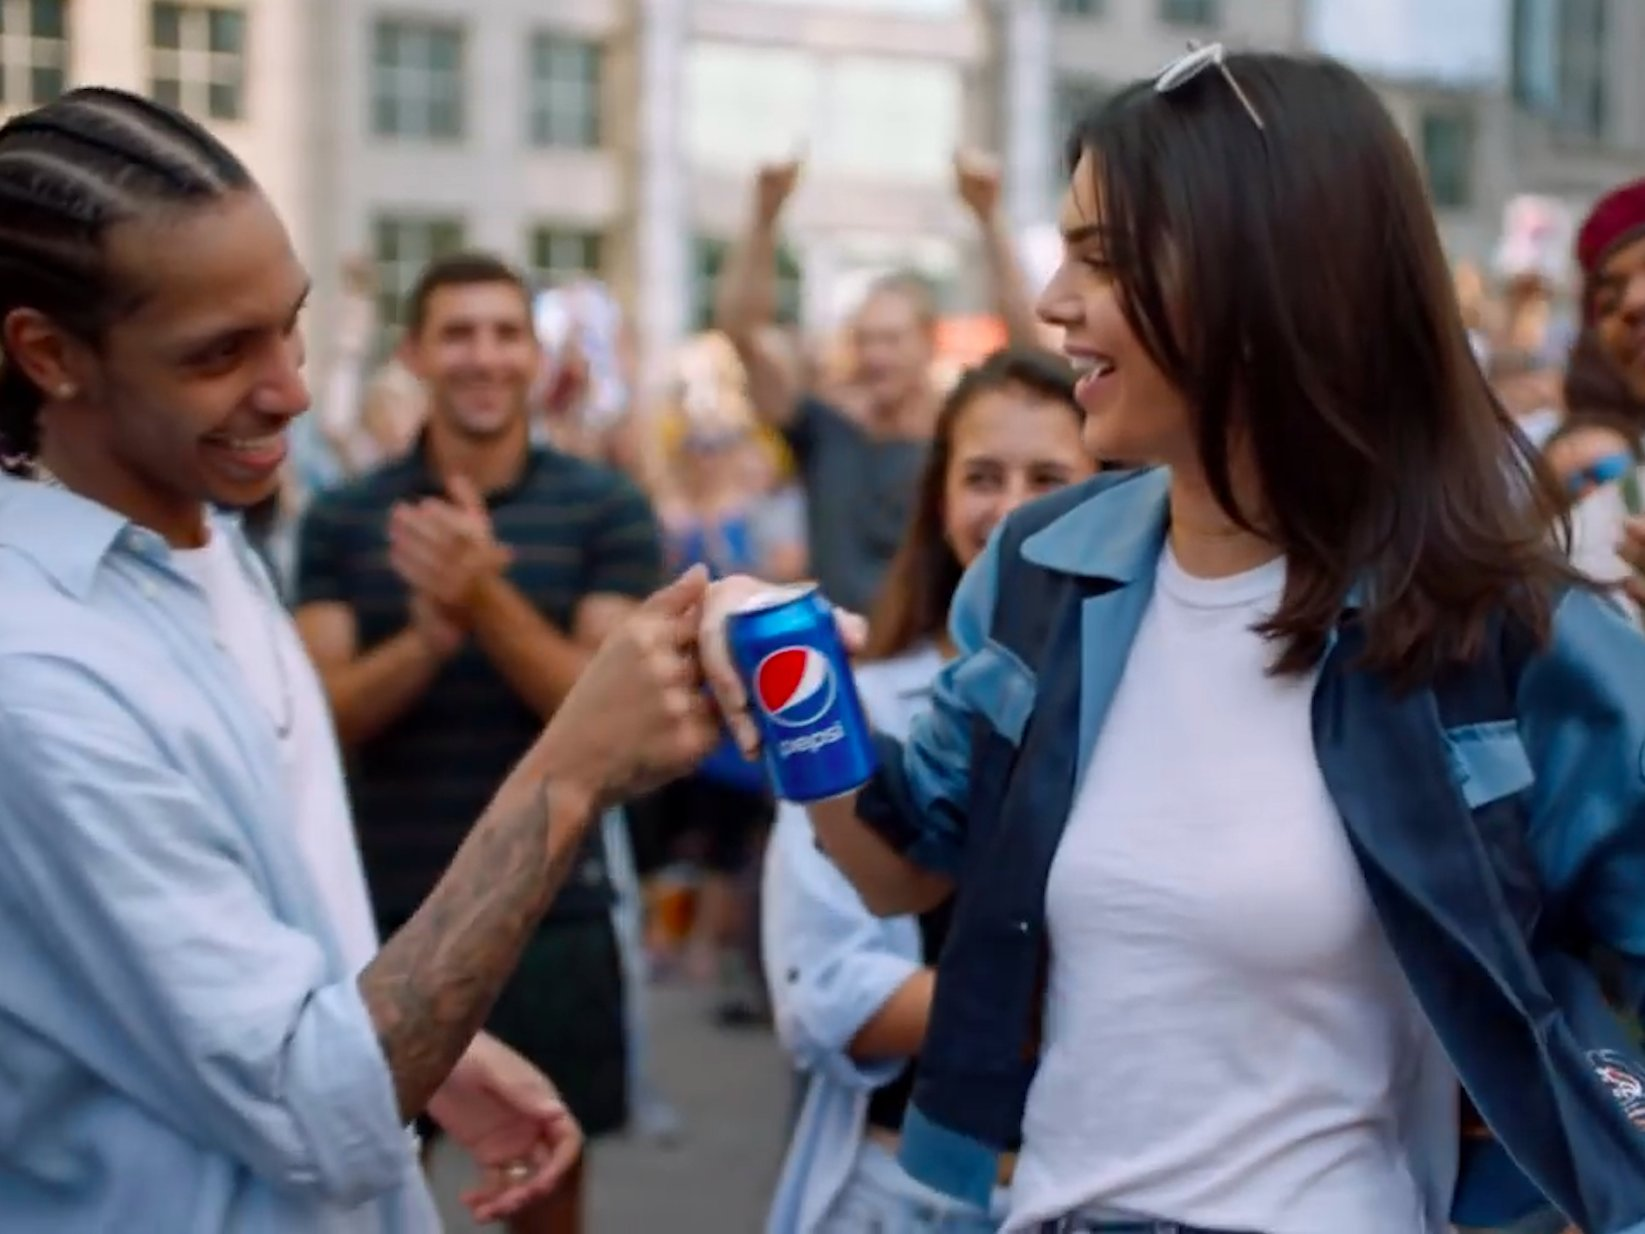 Not so refreshing: How the Pepsi ad fell flat on its face